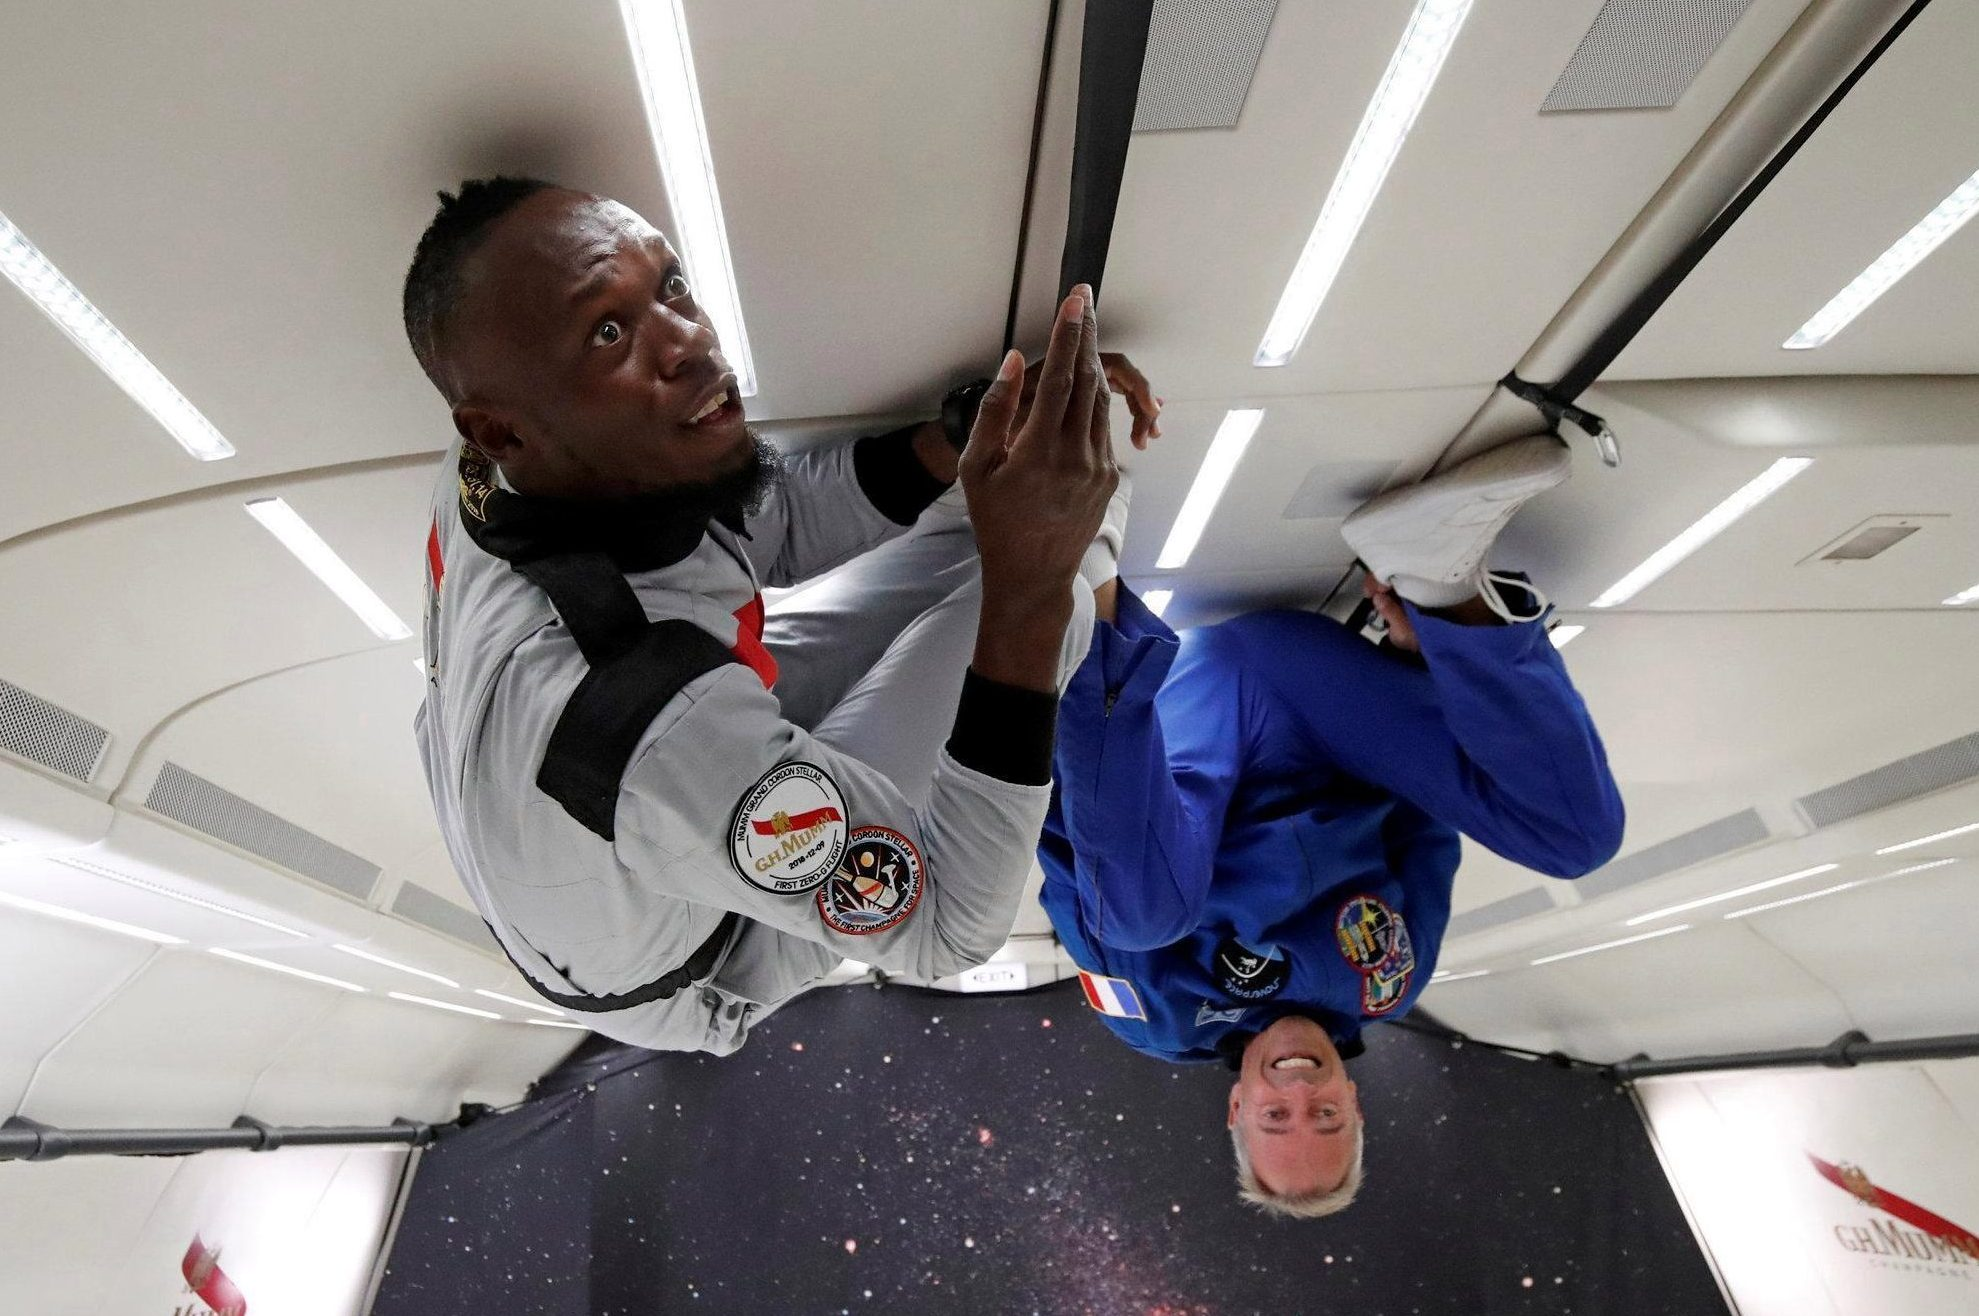 Jamaican legend Usain Bolt is on top again - this time thanks to weightlessness